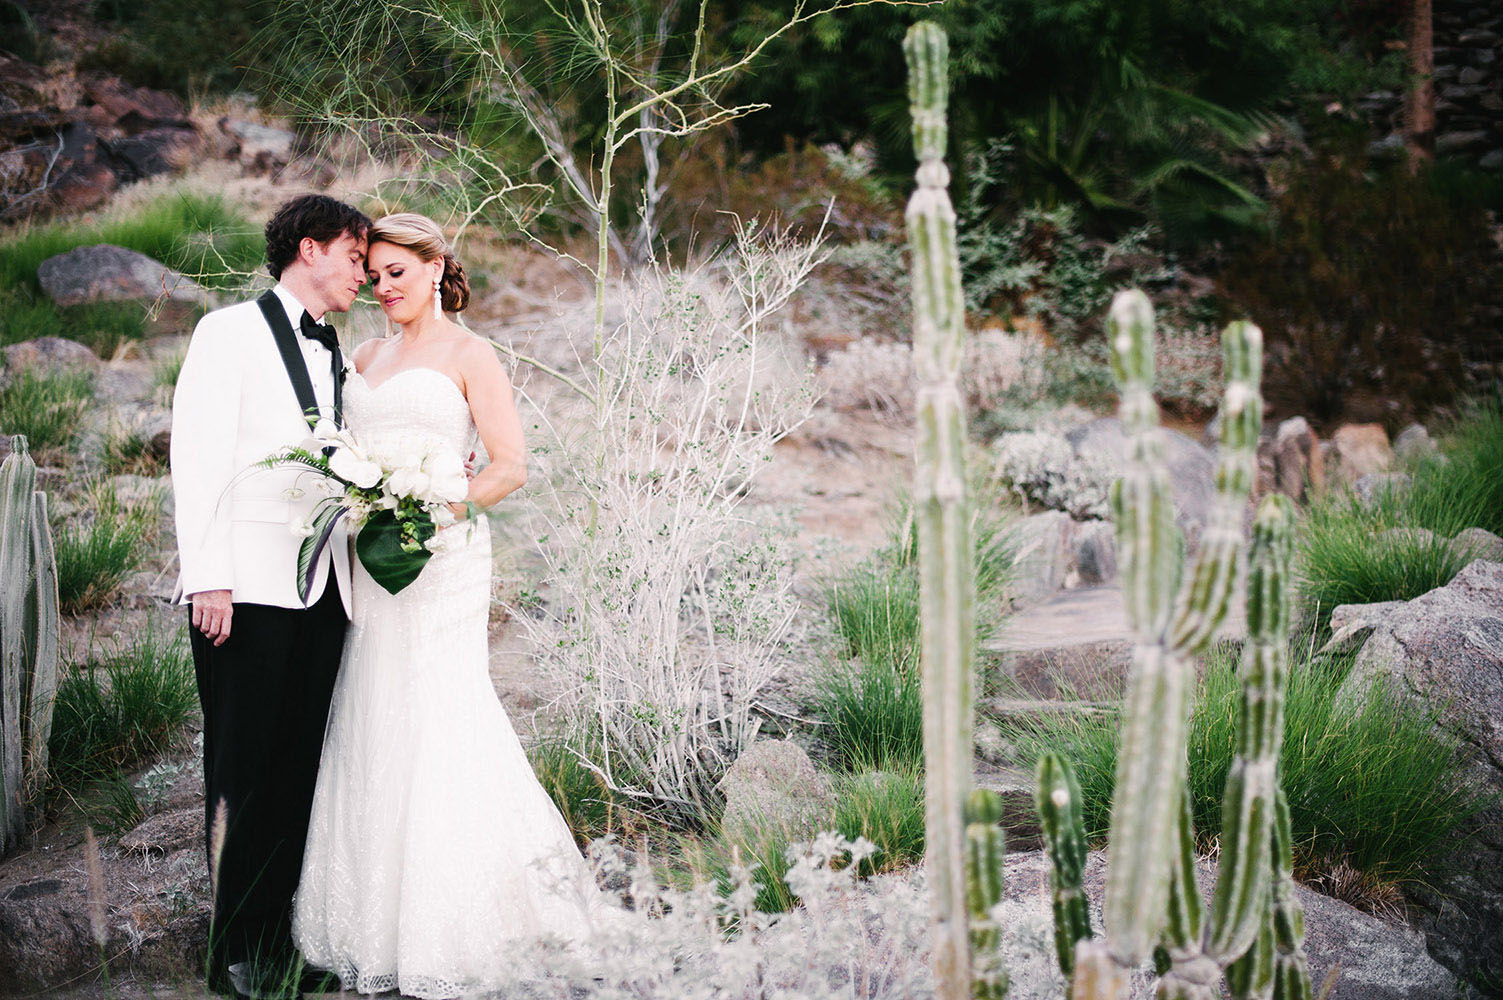 Married couple in Palm Springs by cactus